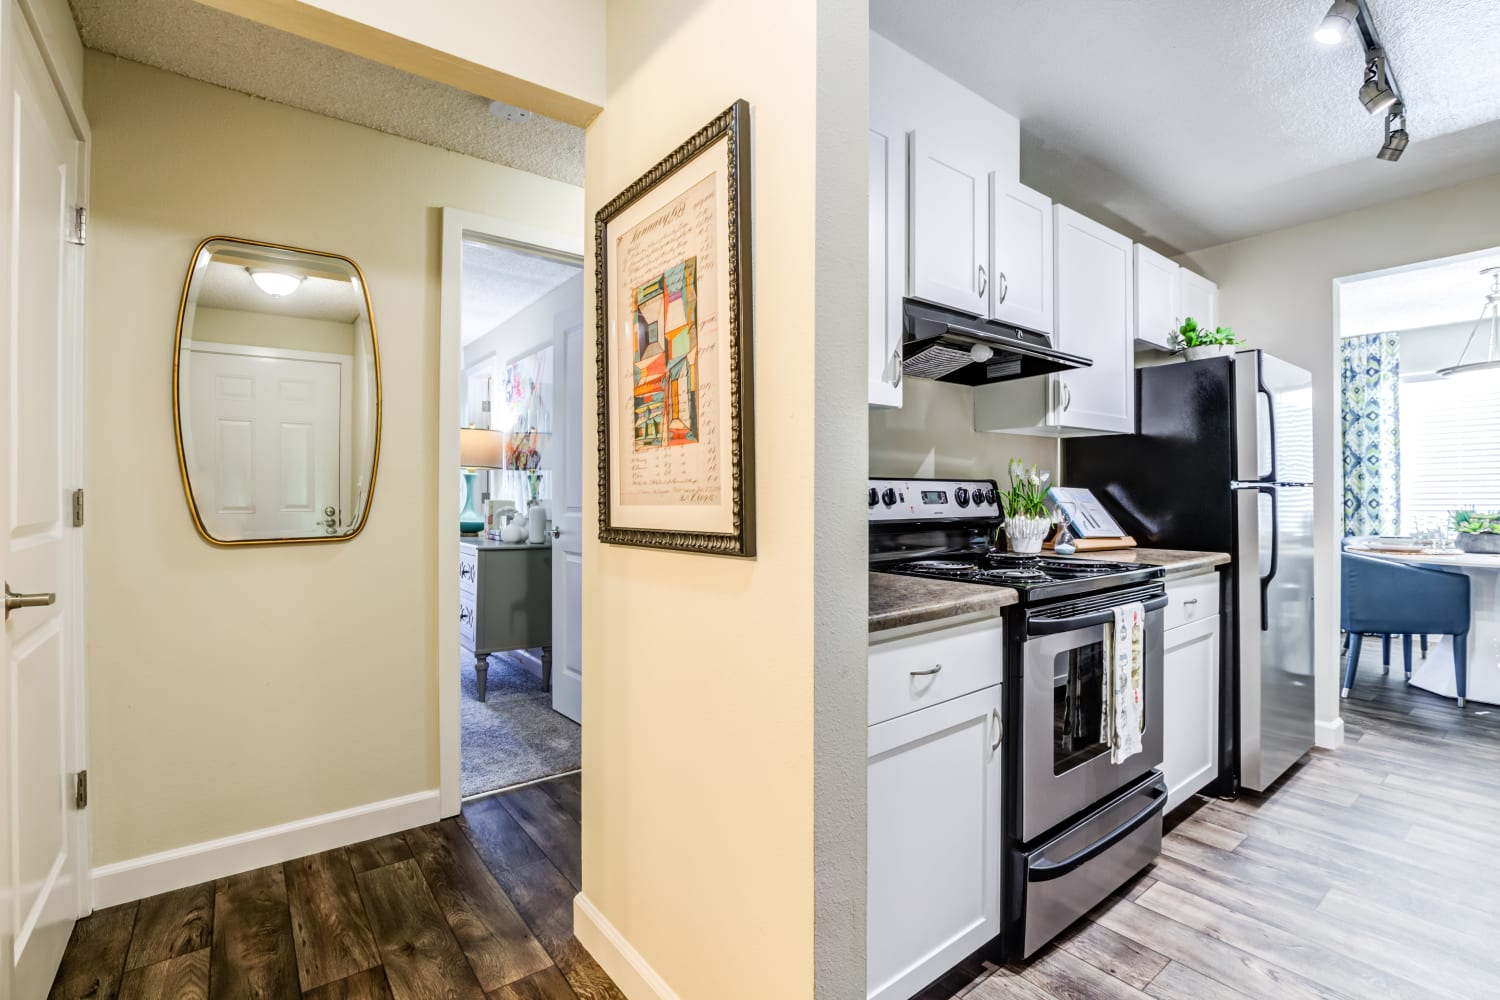 Kitchen with modern amenities at Edgewood Park Apartments in Bellevue, Washington